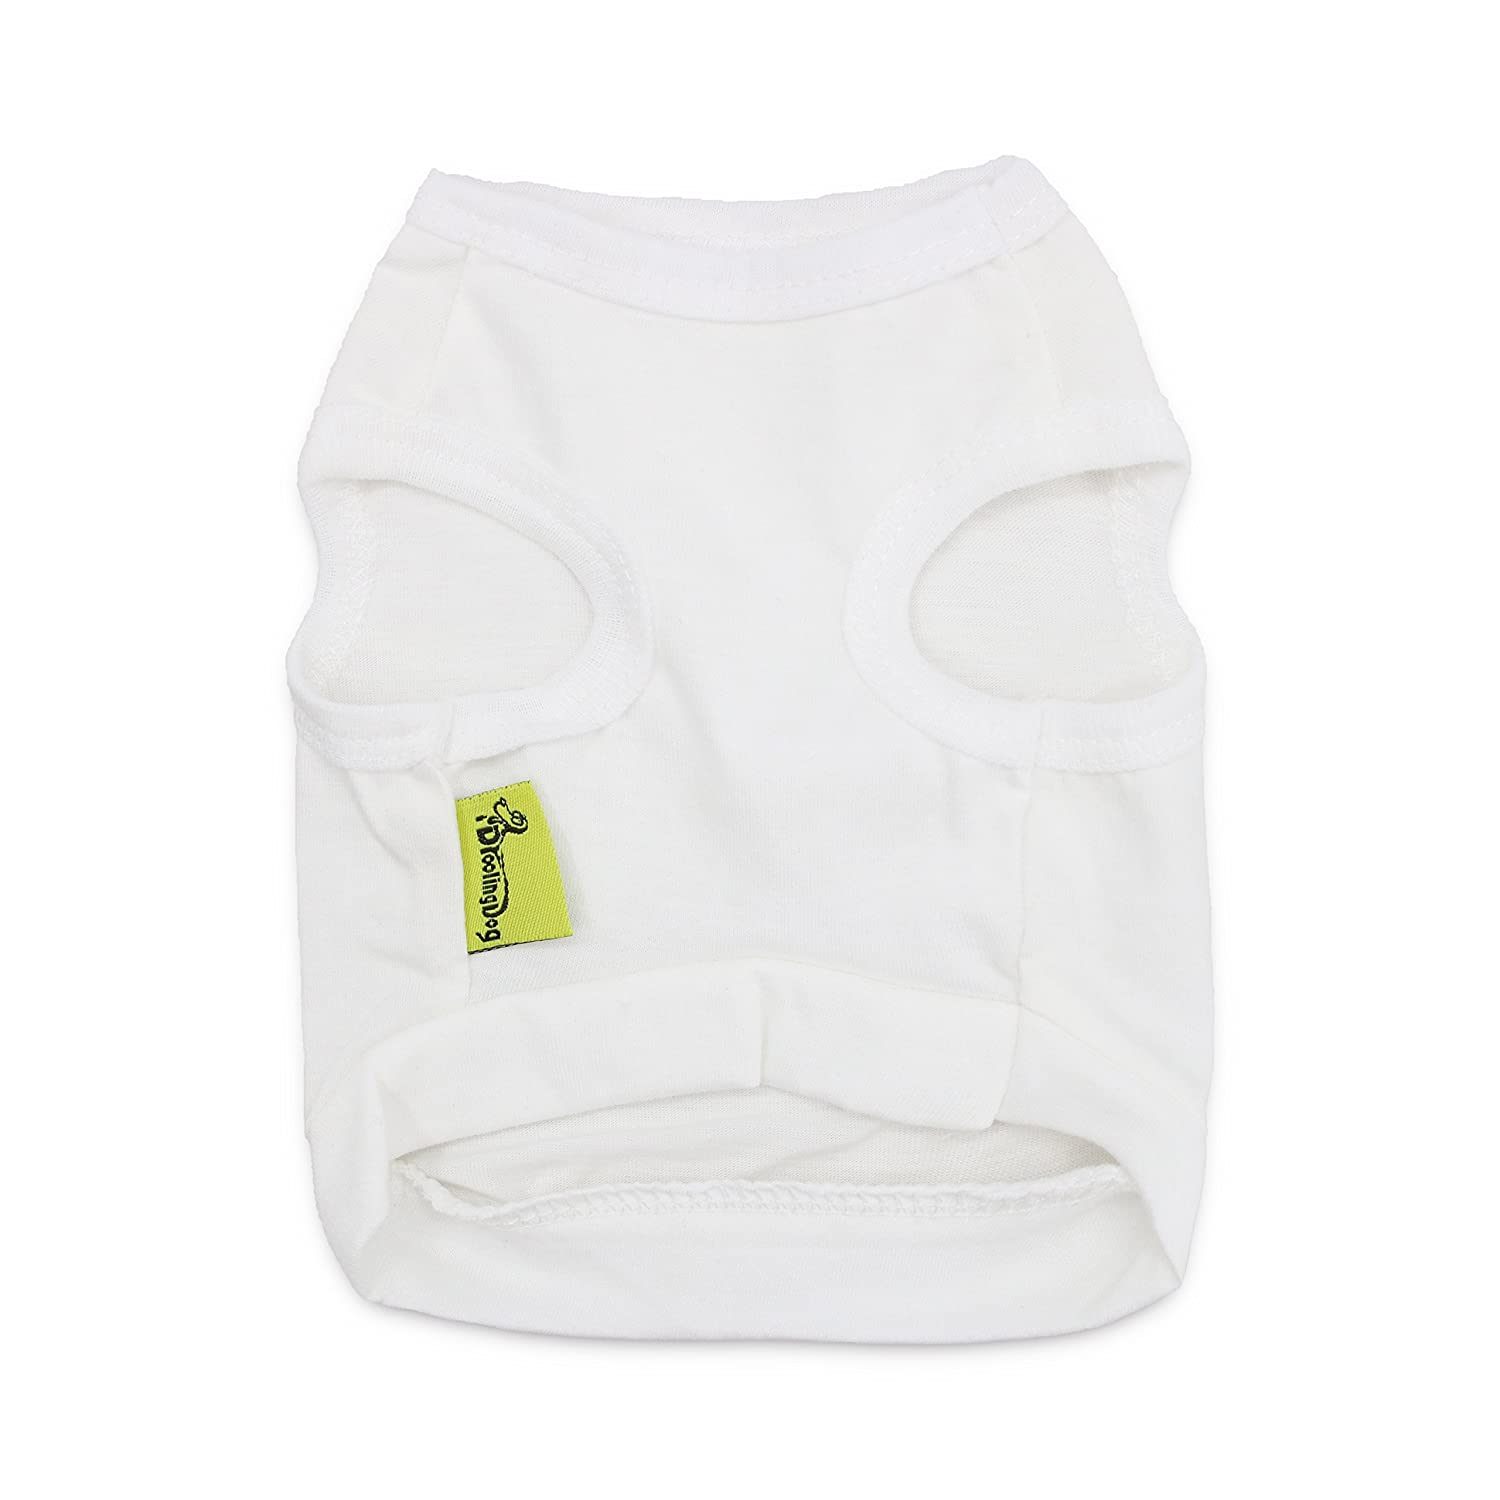 19375f776043a Amazon.com   DroolingDog Pet Dog Clothes White Dog Shirts Puppy T Shirt for  Small Dogs